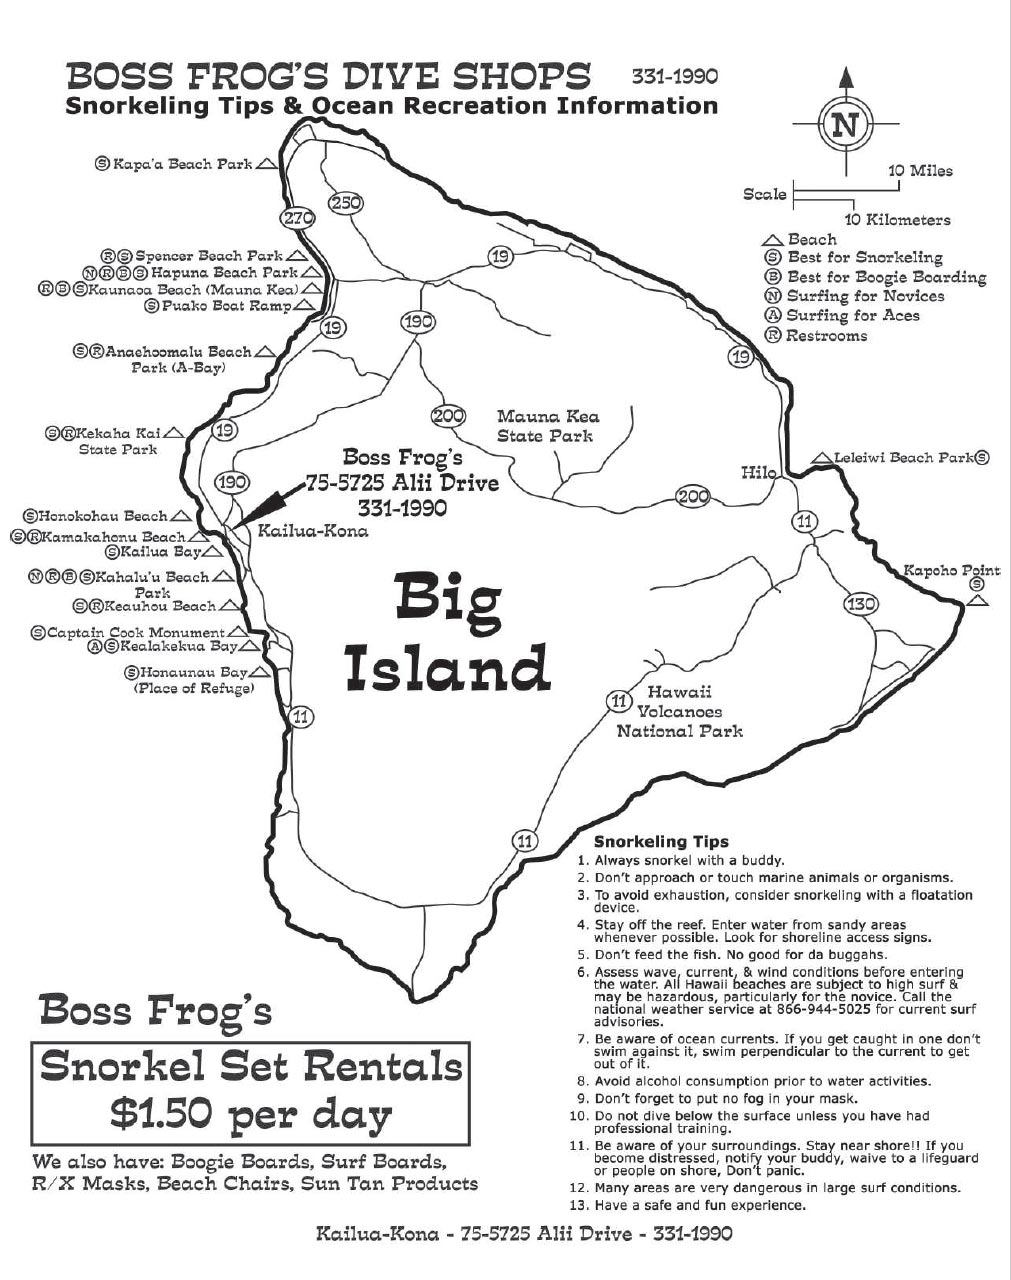 helicopter tours kauai reviews with Snorkel Map on Mauna Loa Helicopter Tours Lihue in addition Travel Tips Information besides Waipouli Beach Resort D206 likewise Poipu Beach in addition .